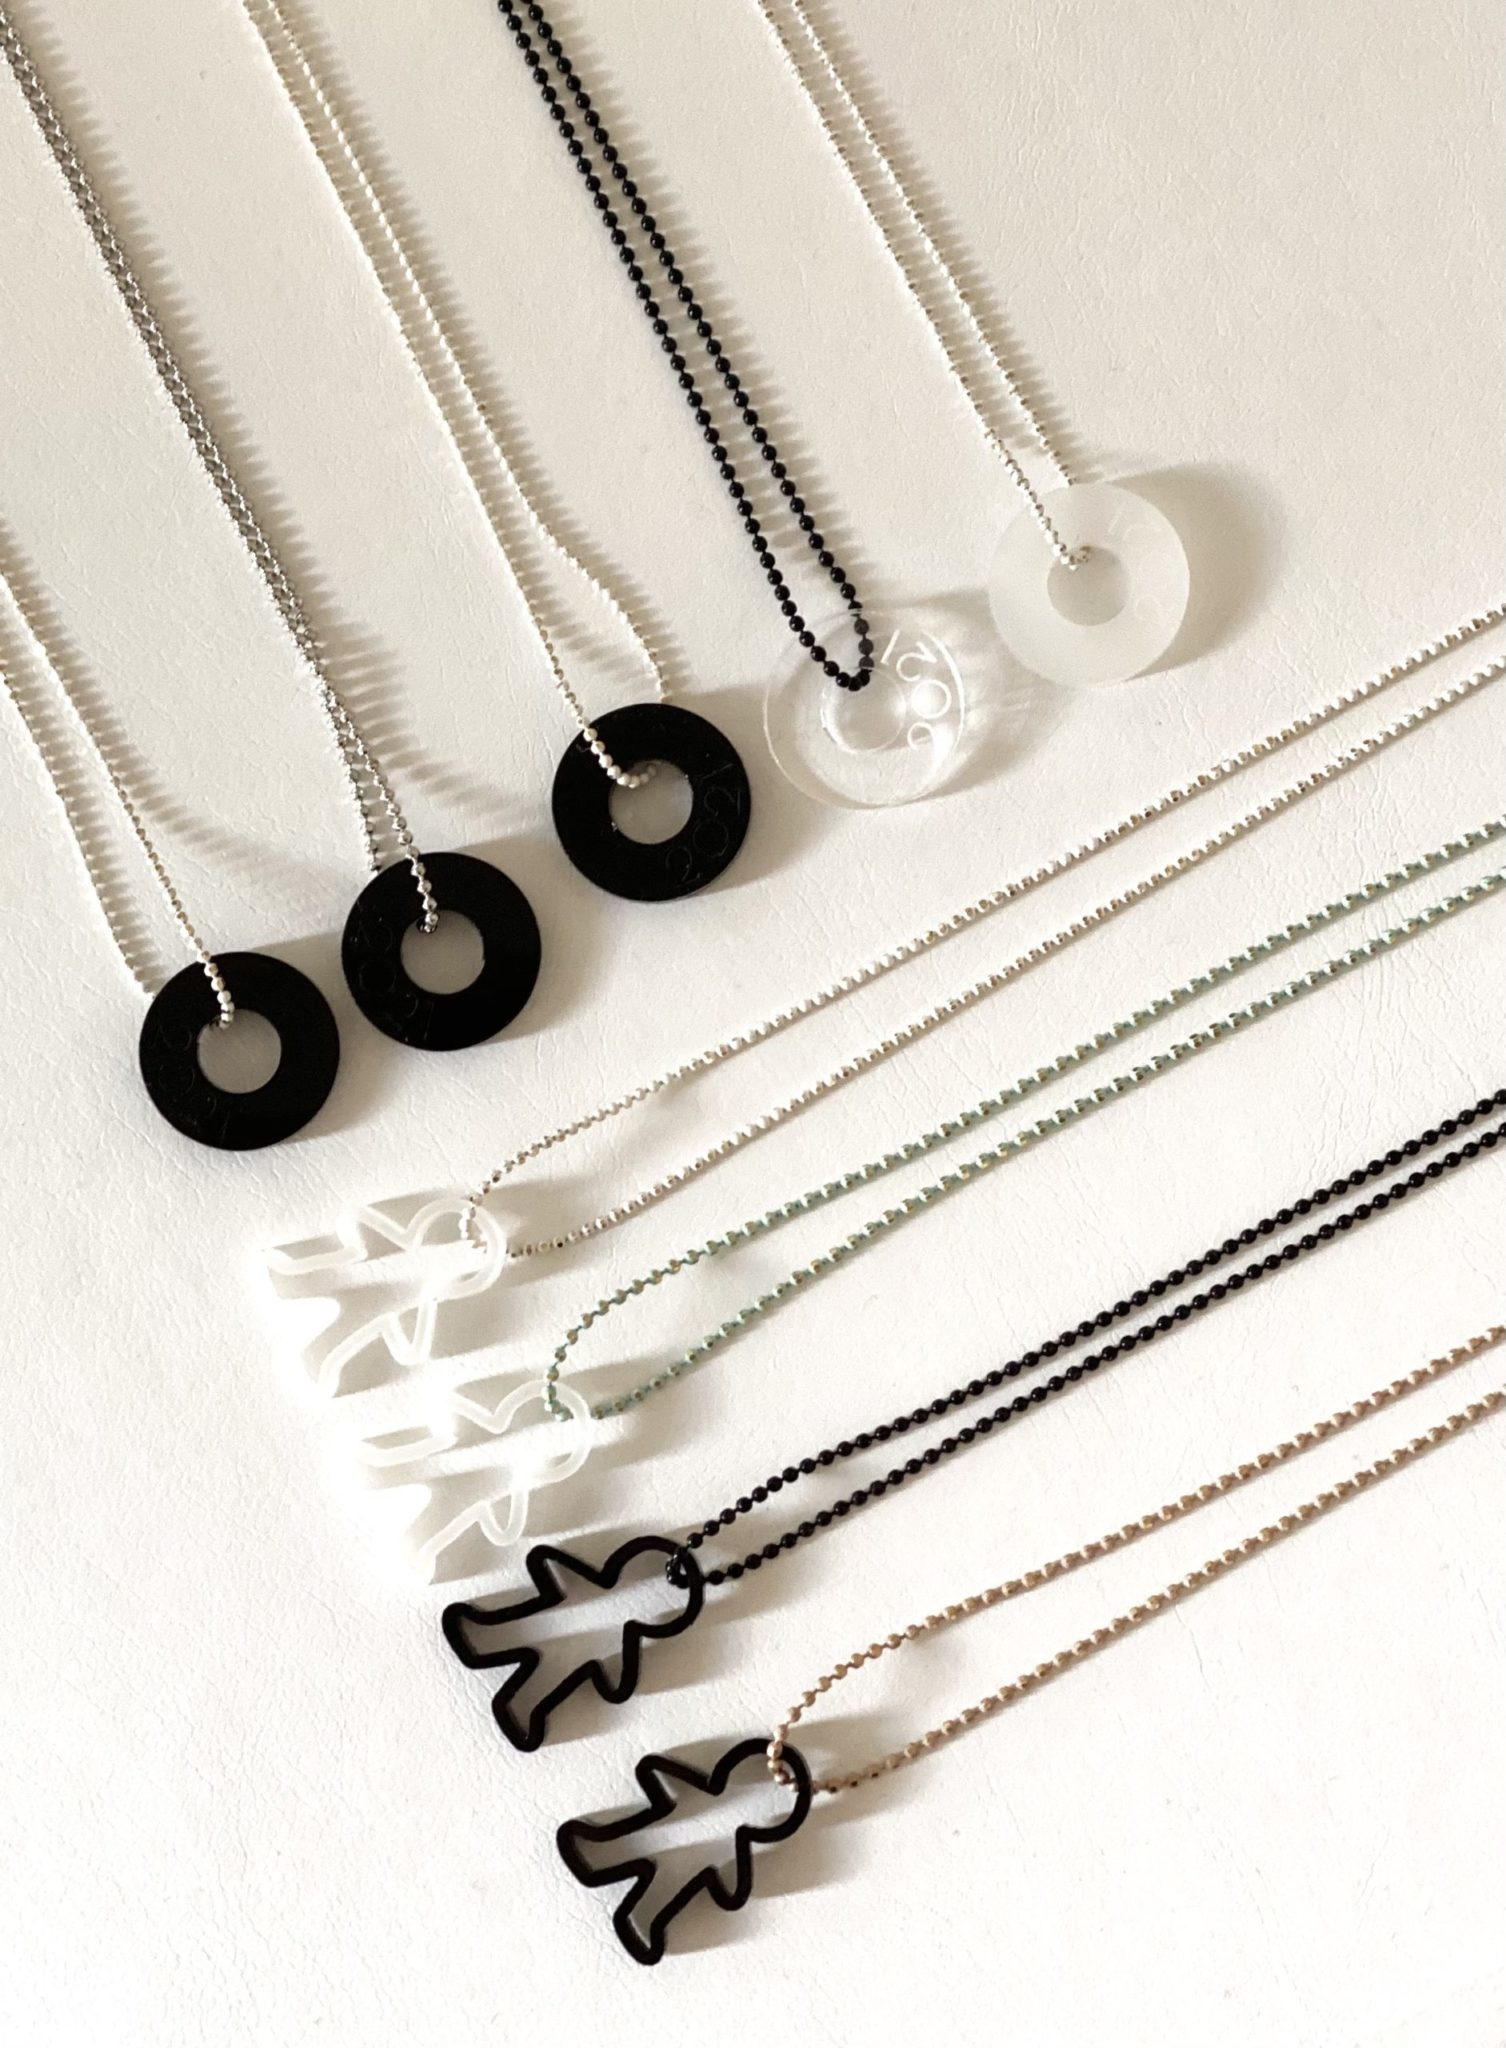 2021-charm-the-necklaces-special-occasion-combinations